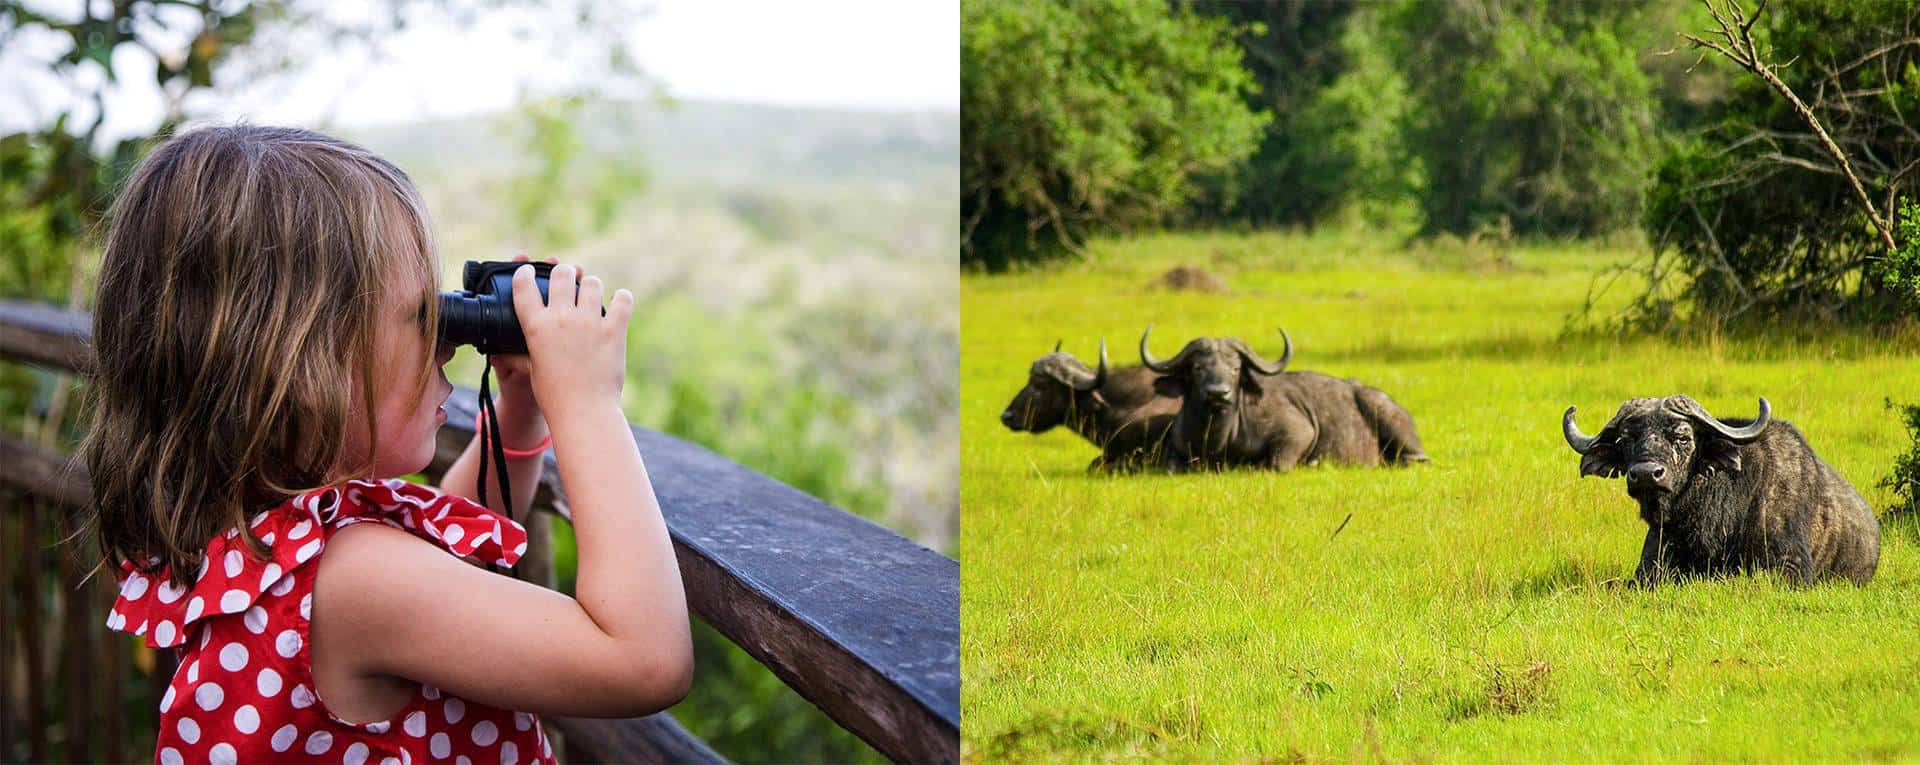 Best Time For Vacationing With Children In Uganda